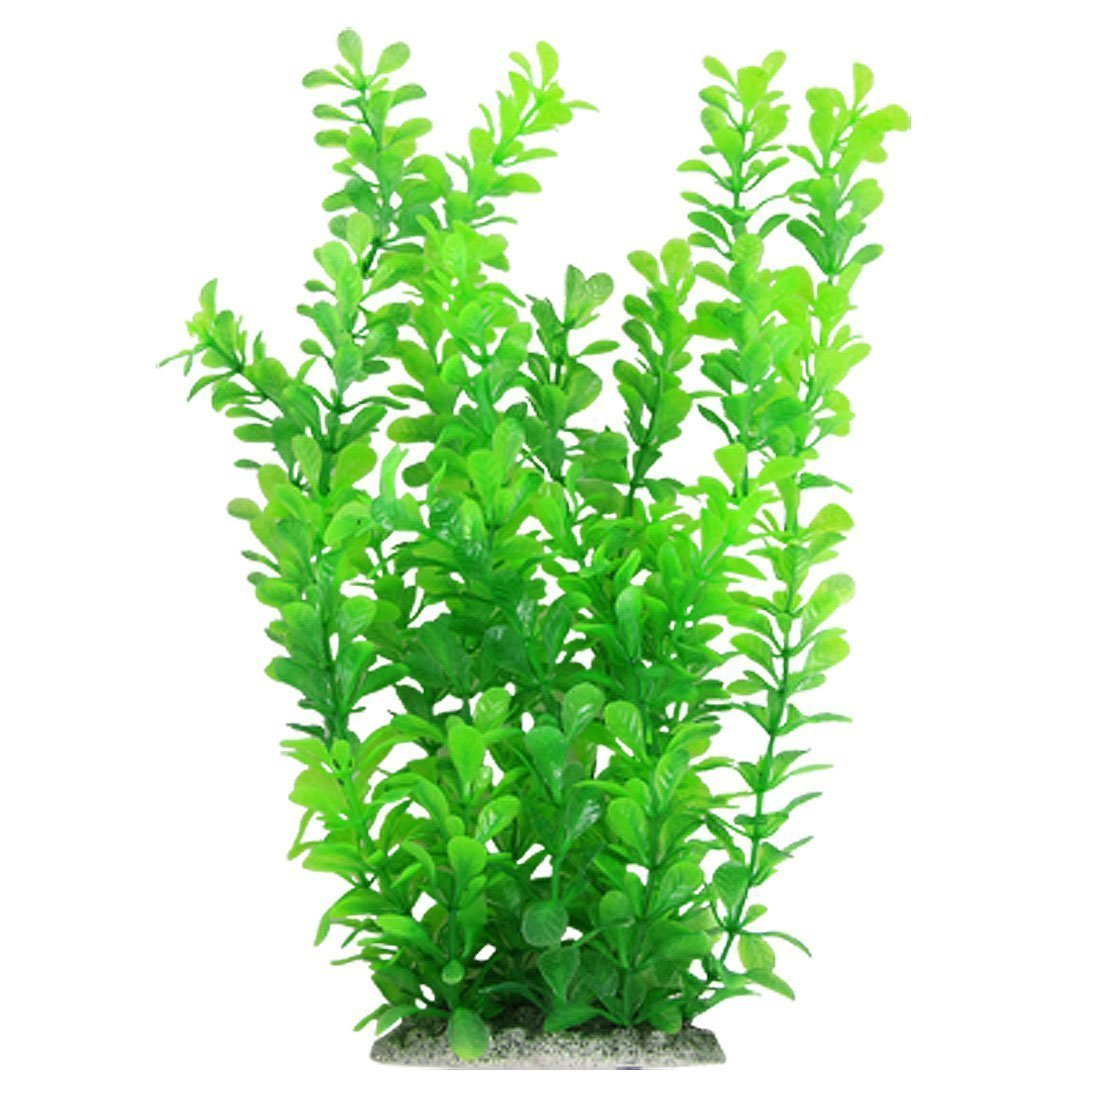 inch green water. Algae clipart fish tank plant